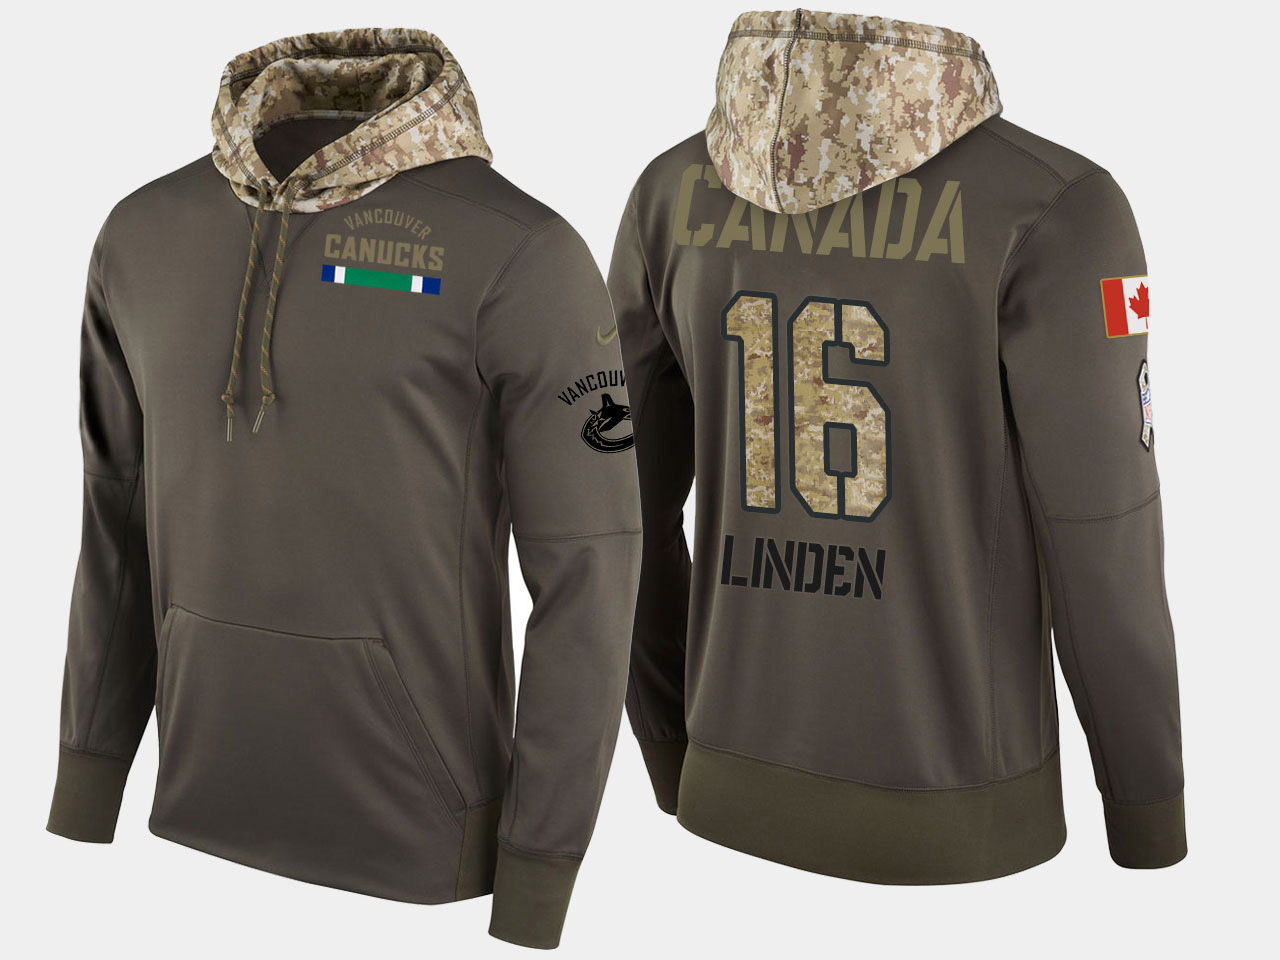 Nike Canucks 16 Trevor Linden Retired Olive Salute To Service Pullover Hoodie